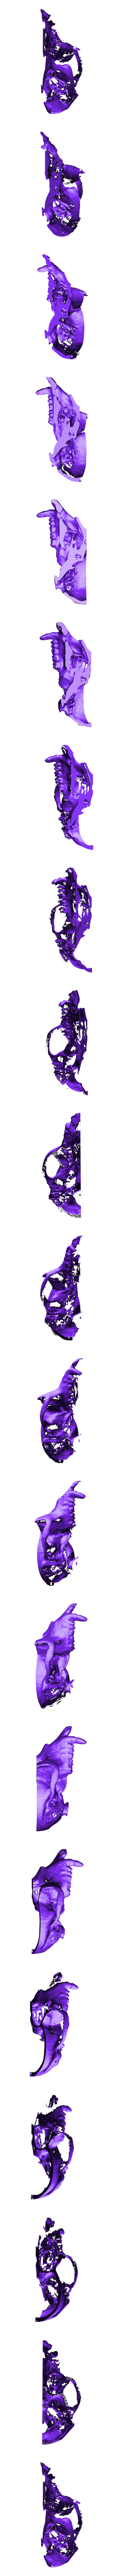 amidr.stl Download free STL file Ape Skull • 3D printable template, LordLilapause